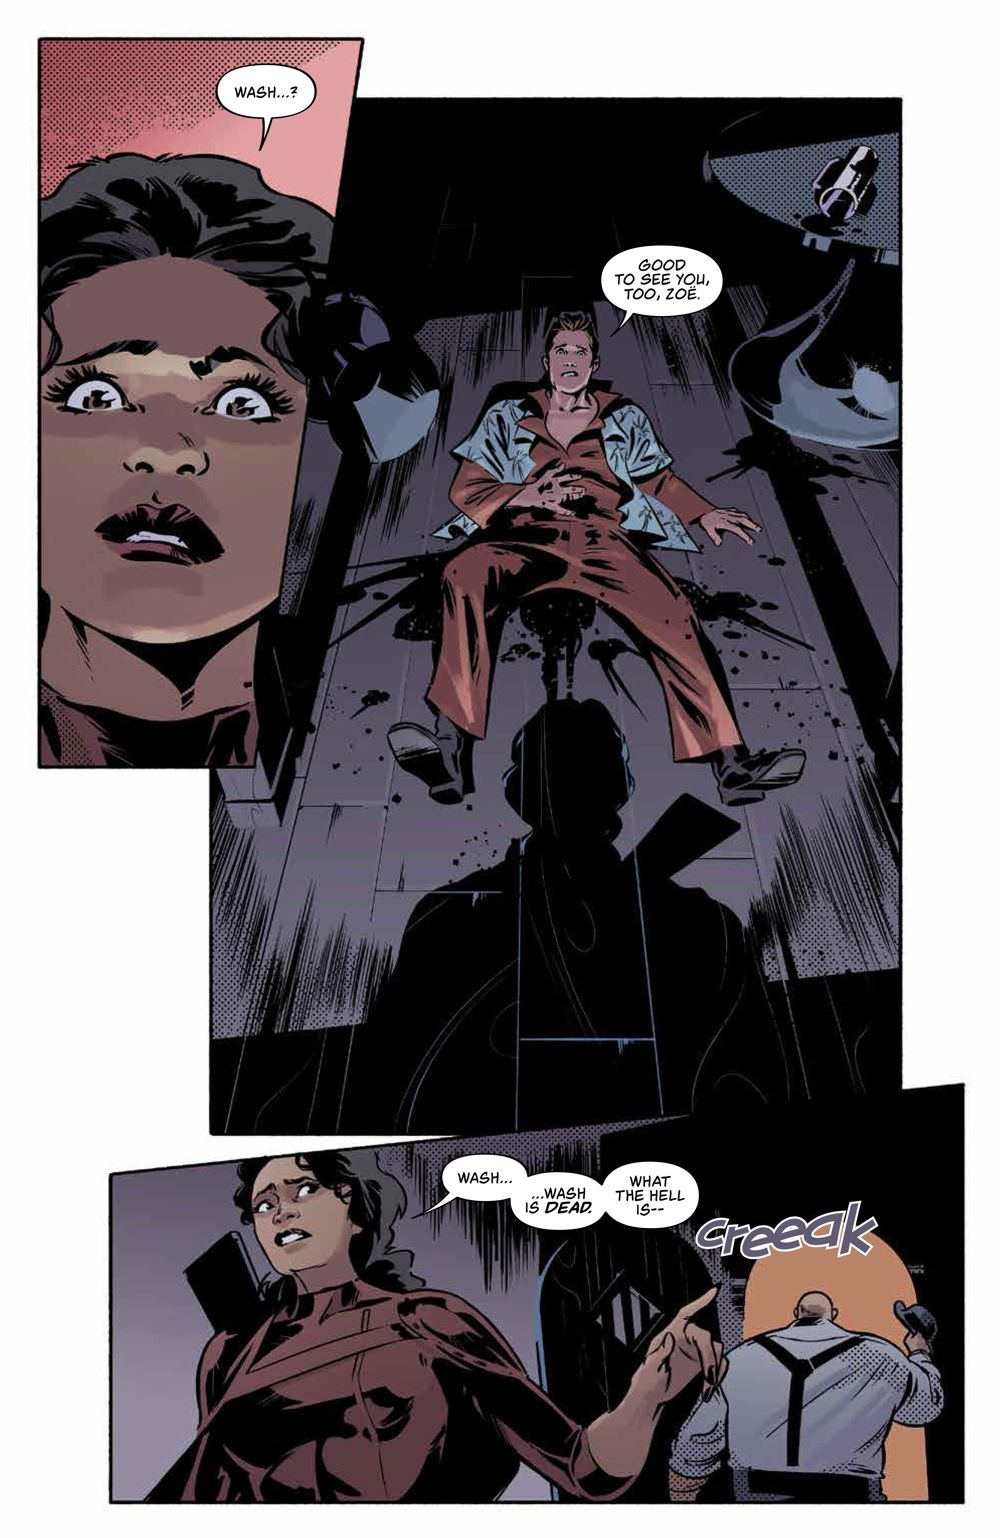 Firefly_026_PRESS_3 ComicList Previews: FIREFLY #26